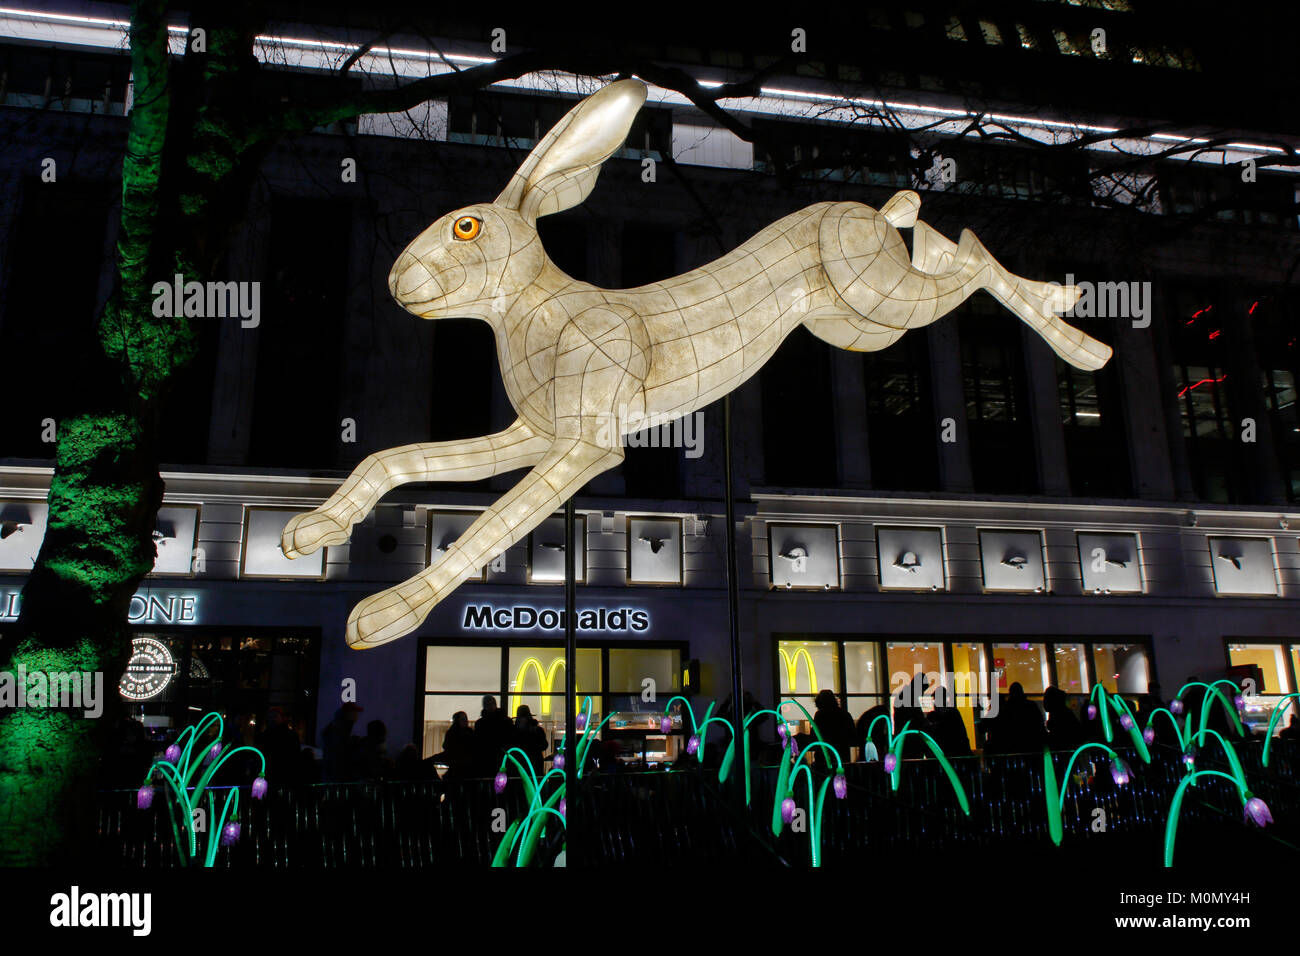 London Lumiere 2018 a festival of illuminated art installations leaping Hare artwork in Leicester Square - Stock Image